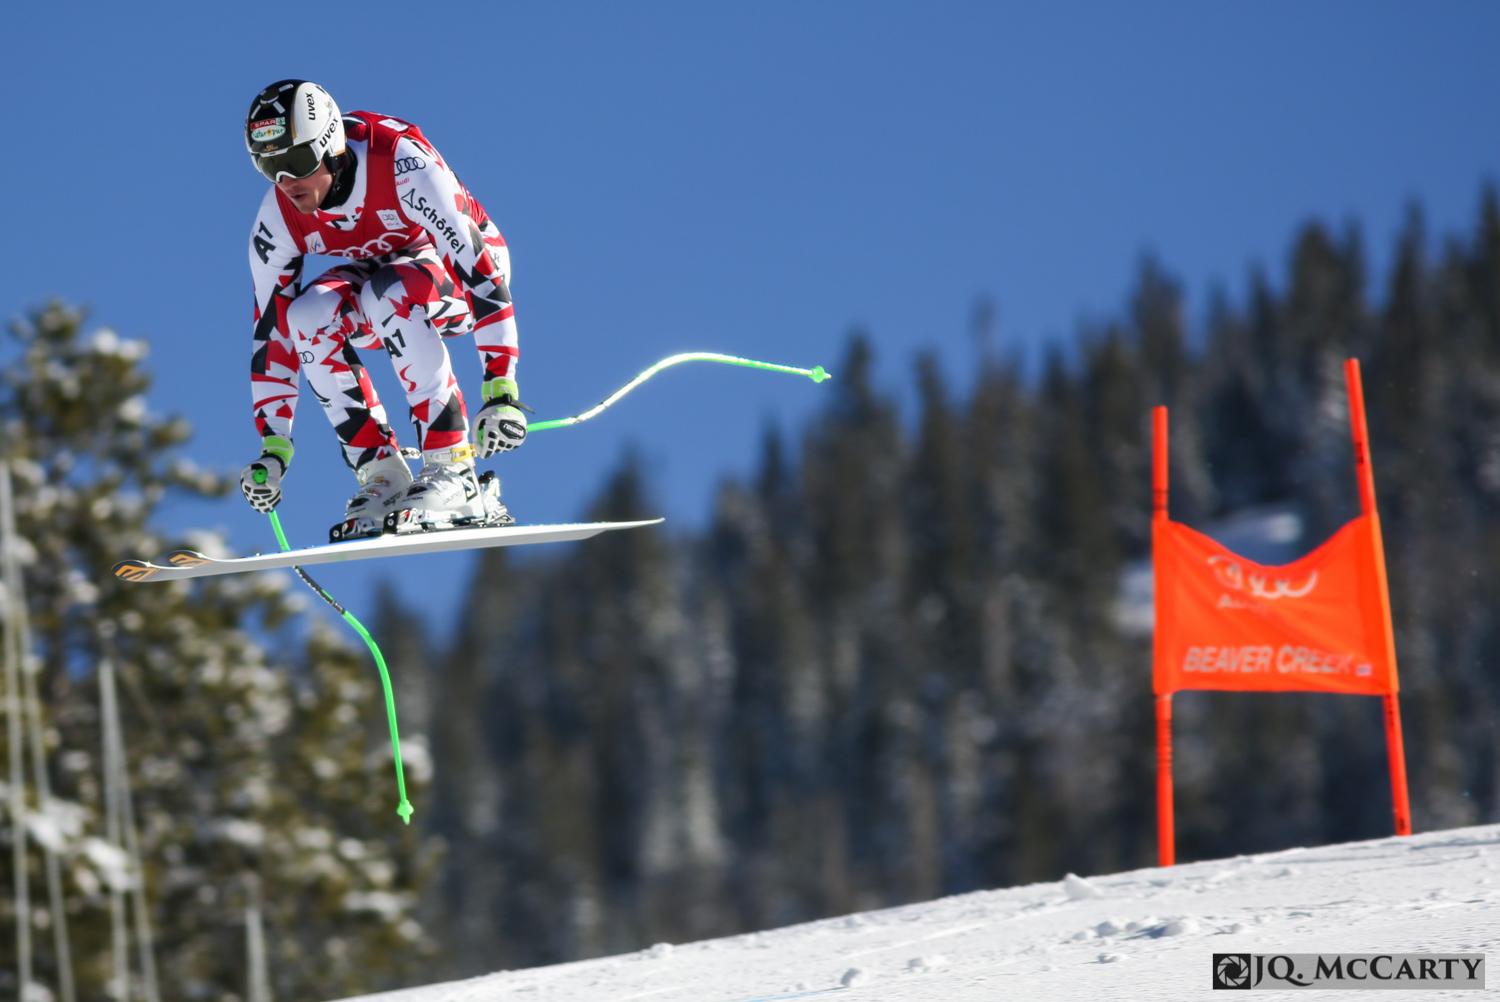 Austria's Hannes Reichelt flies over the Red Tail jump during the first day of downhill training for the Birds of Prey World Cup ski race Wednesday in Beaver Creek. Reichelt finished 7th fastest with a time of 1 minute, 44.65 seconds.